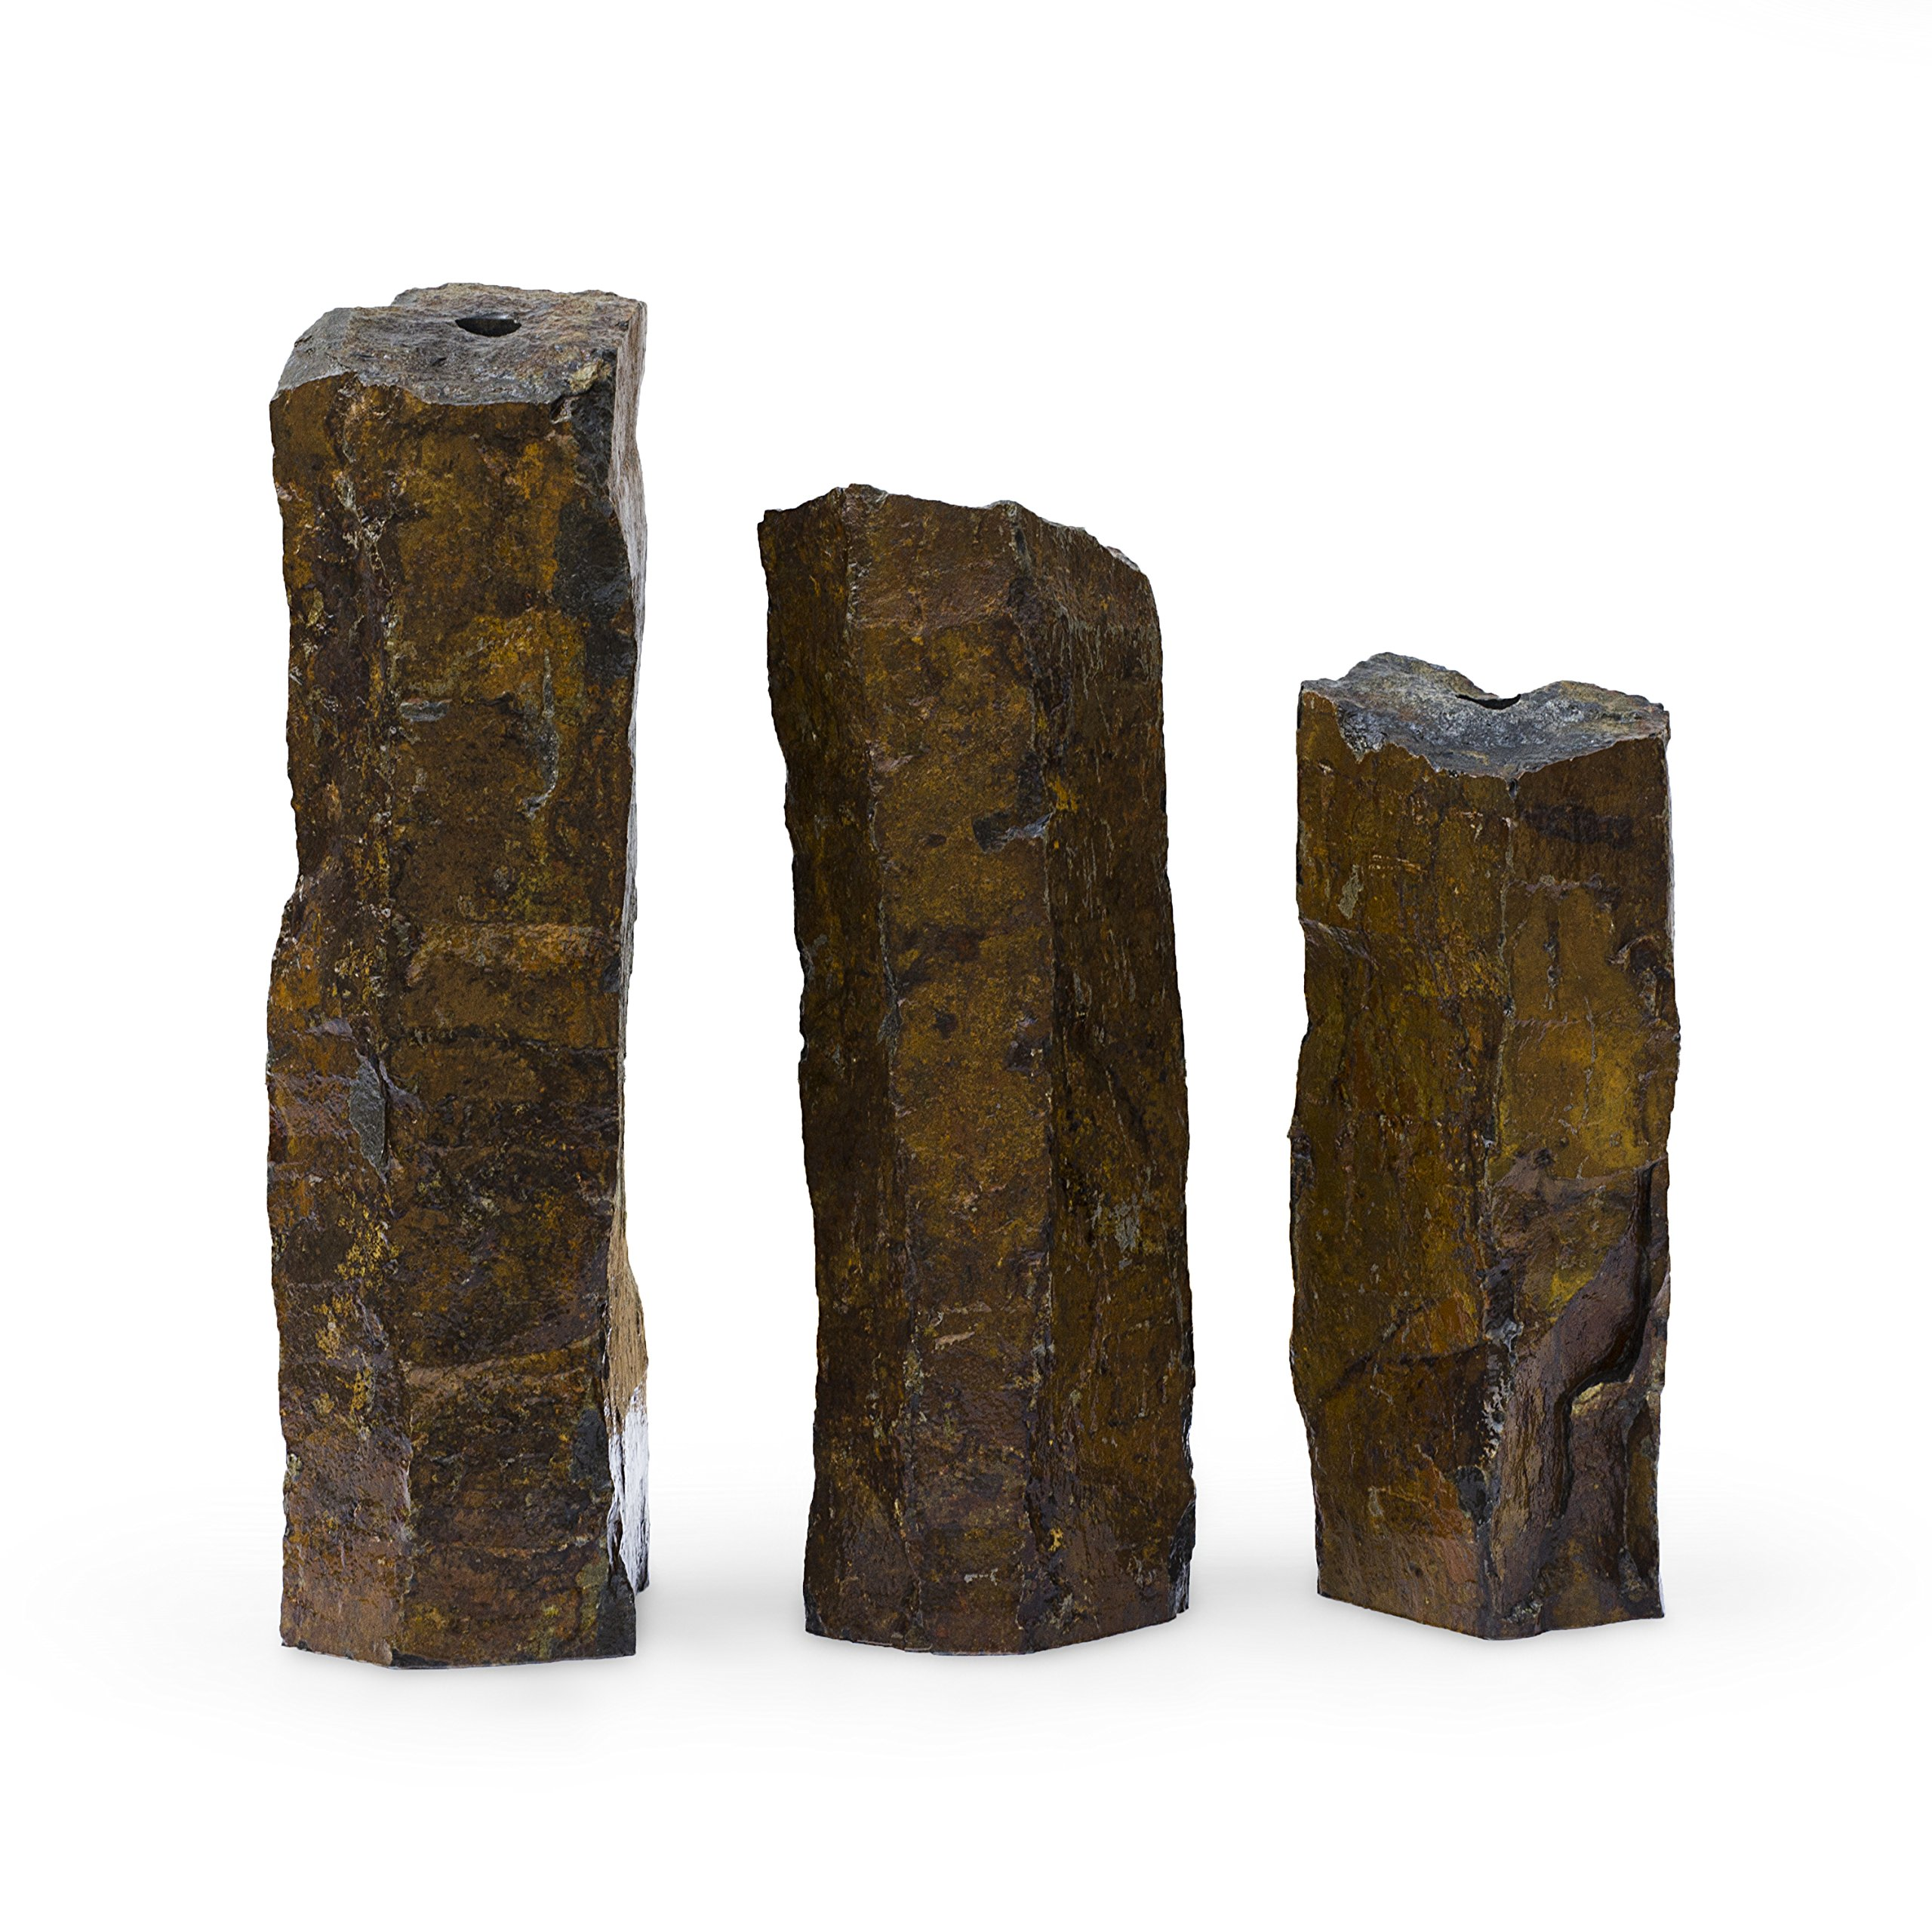 Aquascape Mongolian Basalt Stone Fountain Columns, Set of 3, 24-Inch, 30-Inch, 36-Inch | 58062